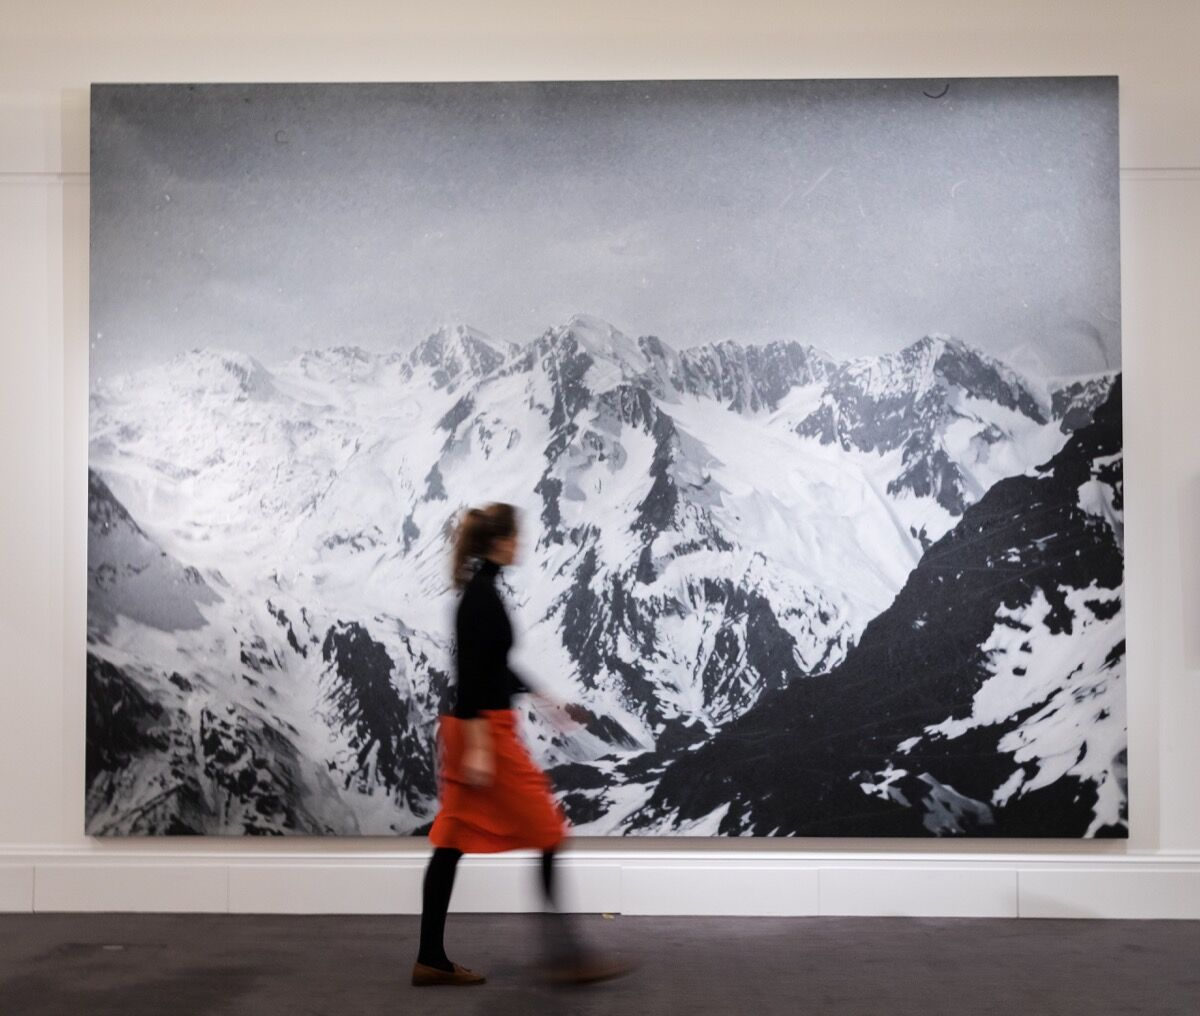 Rudolf Stingel's Untitled (2009) at a Sotheby's sale preview. Photo by Vickie Flores / In Pictures via Getty Images.